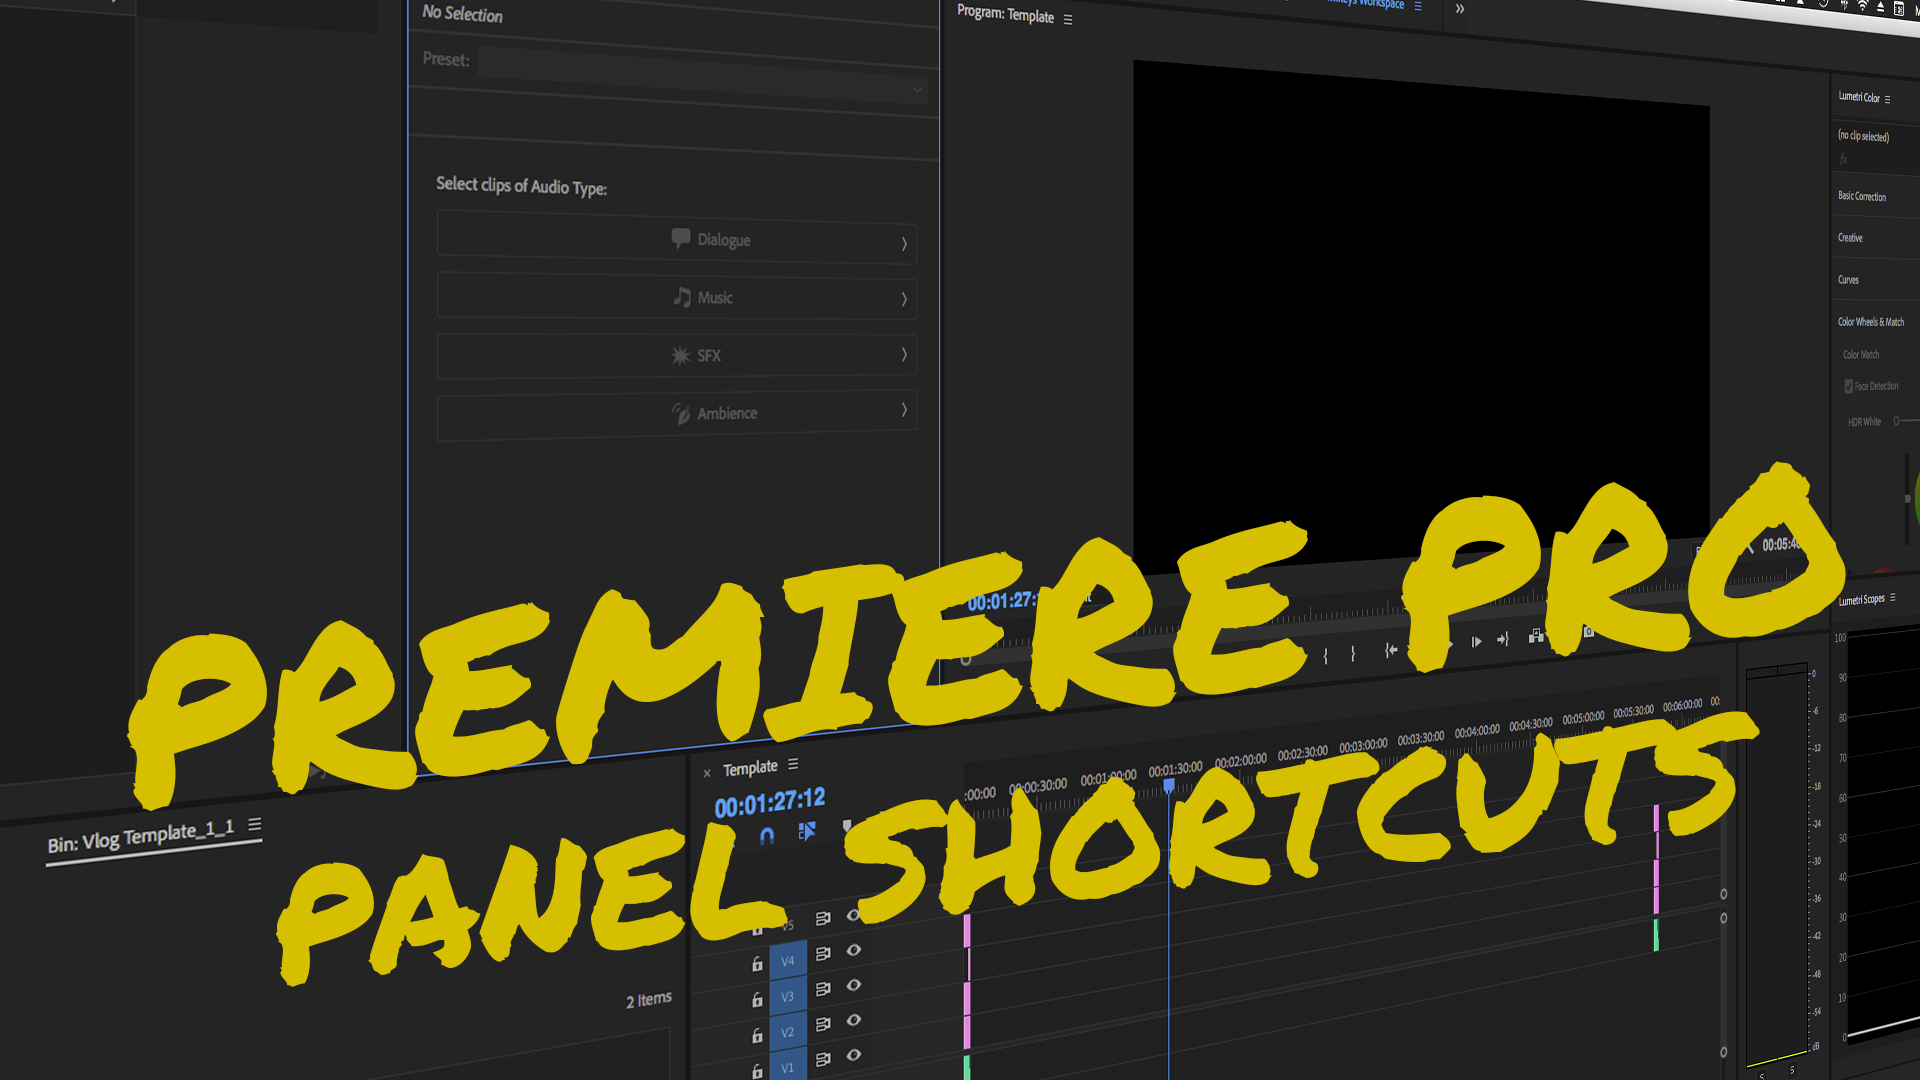 Essential Panel Shortcut Keys in Adobe Premiere Pro